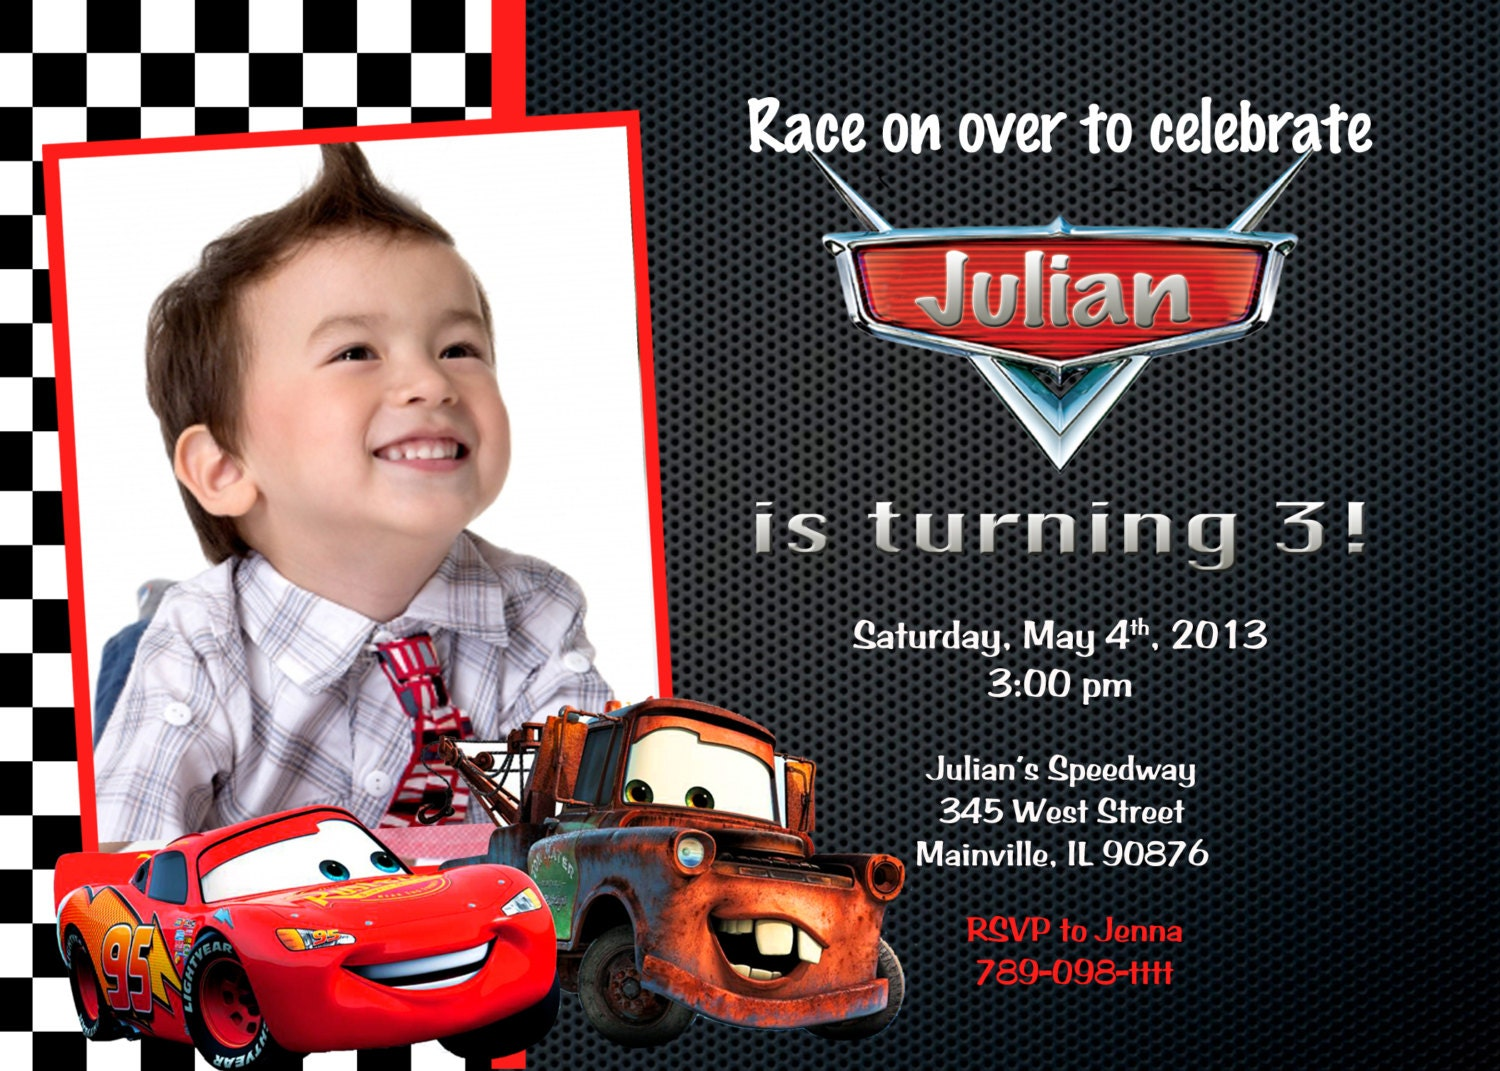 Cars Invitation Card Template Free: Disney Cars Lightning McQueen Mater Birthday Party Invitation